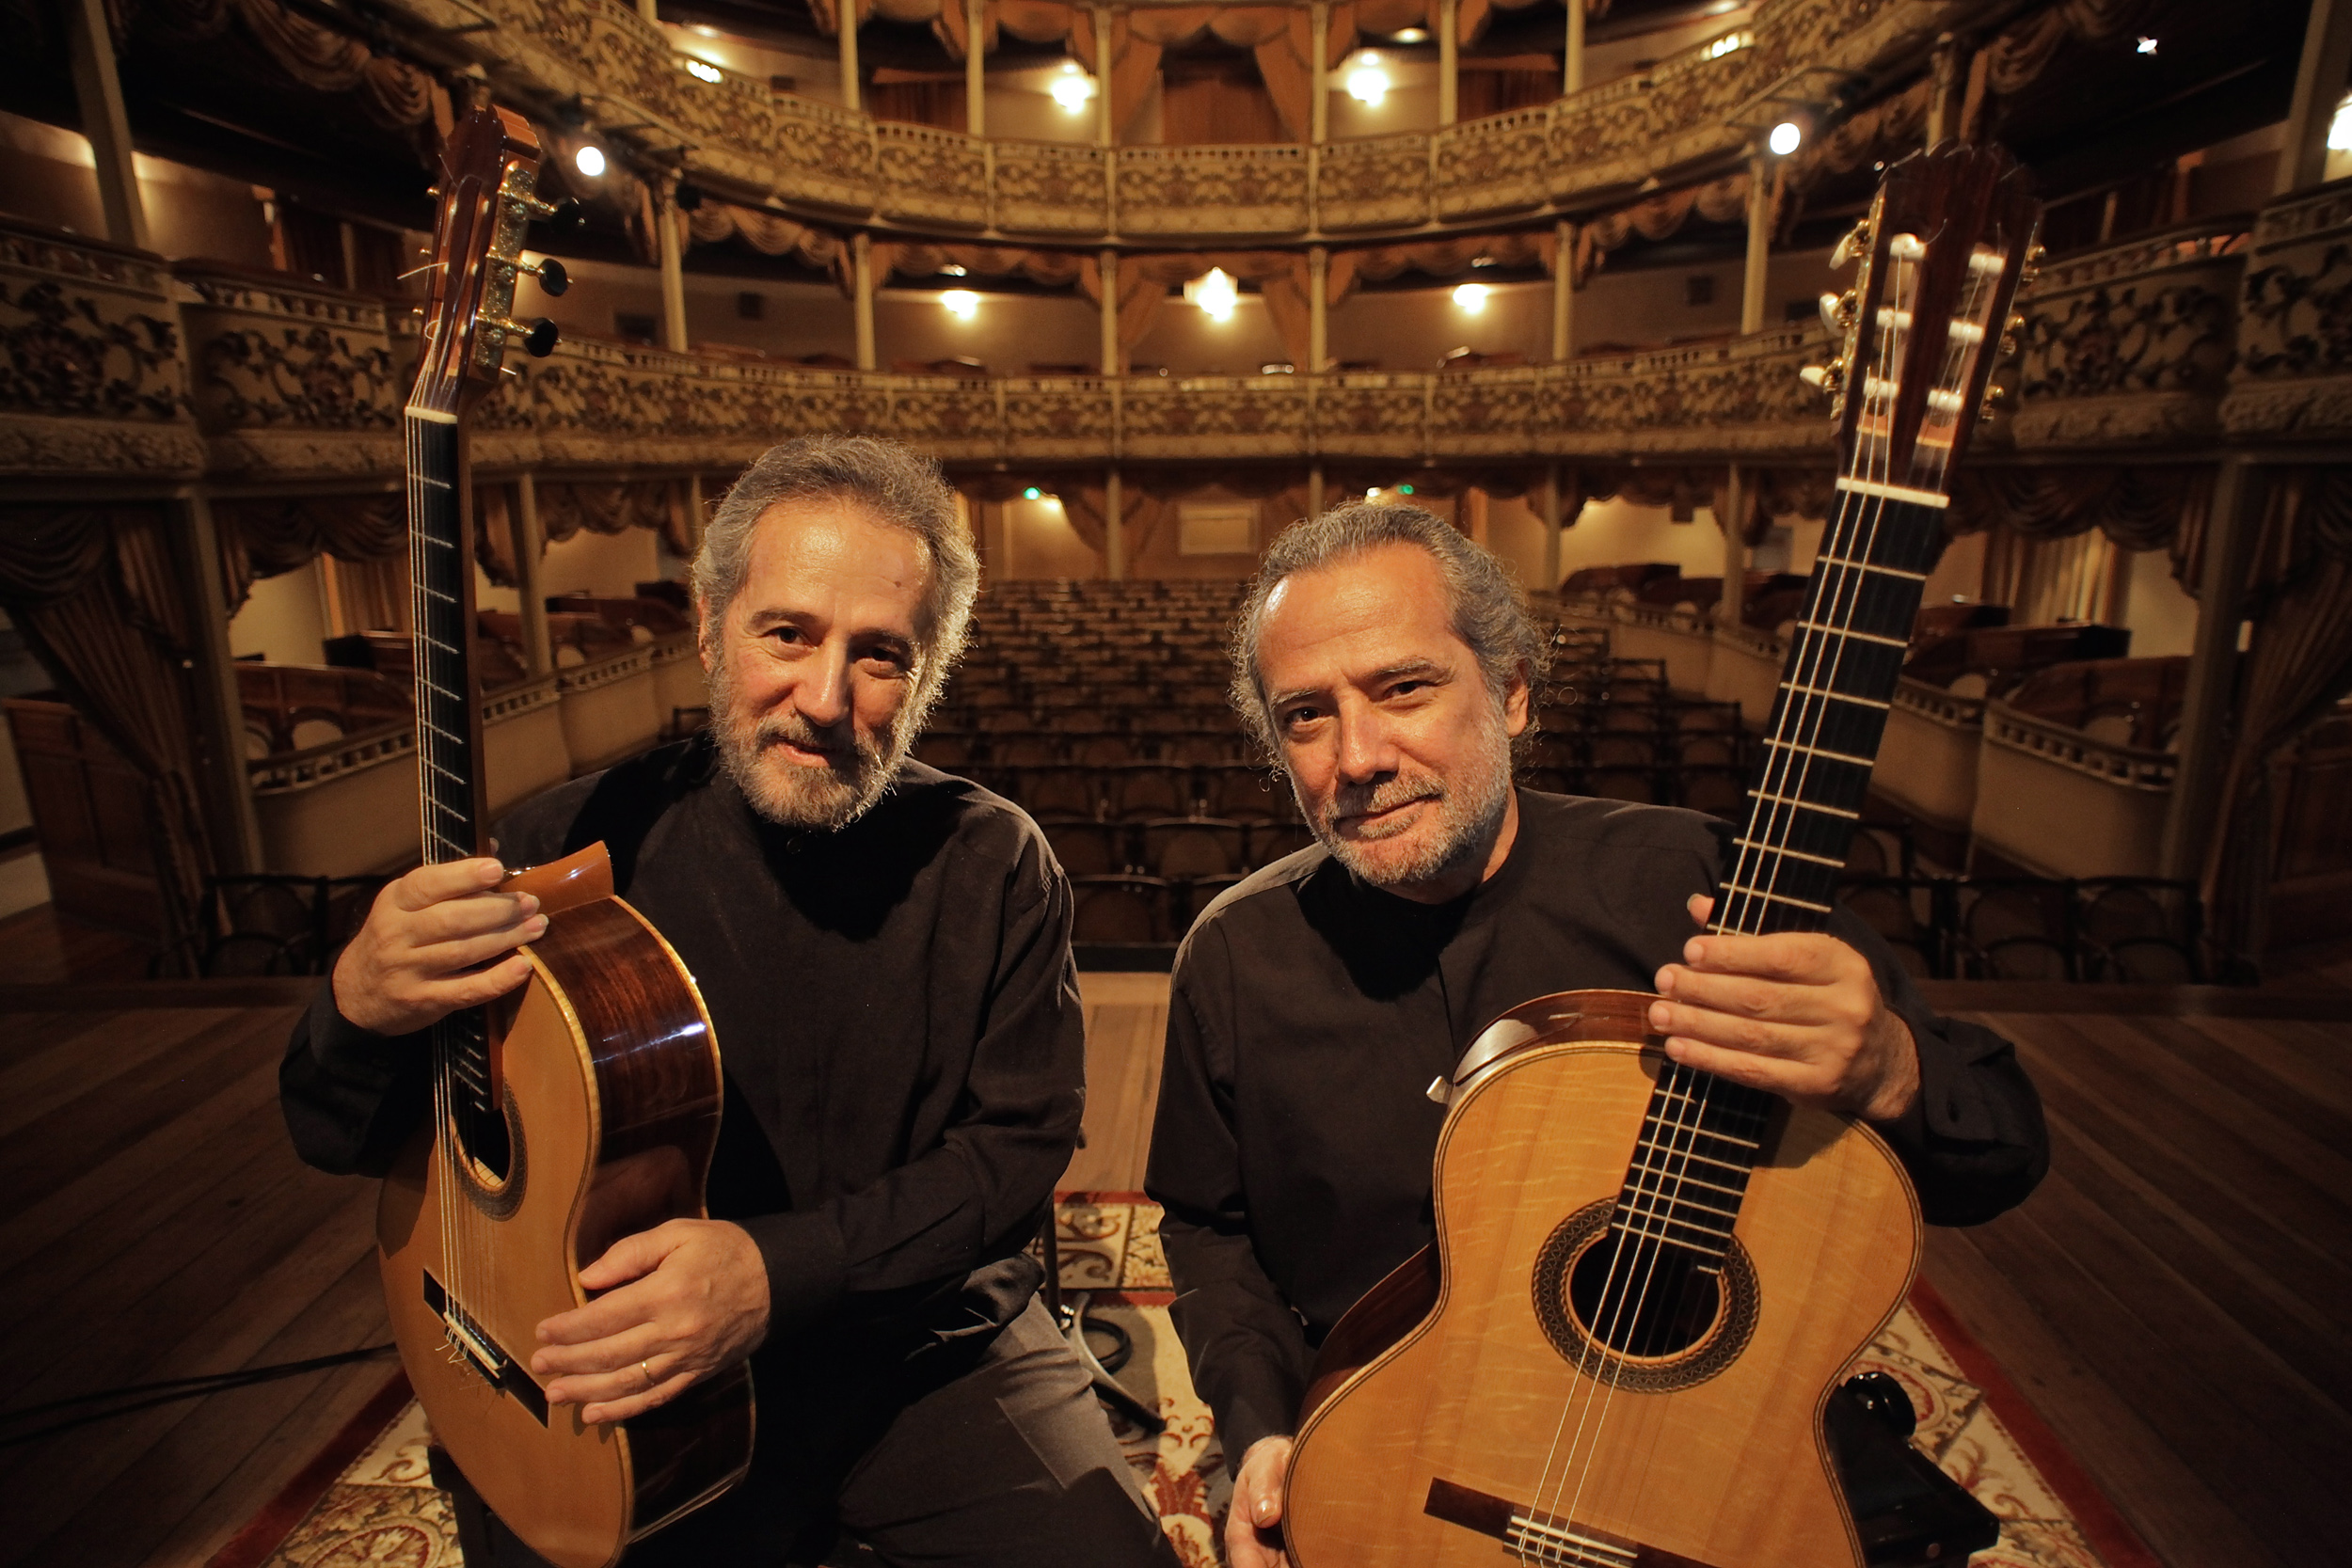 Assad Brother guitar duo photo